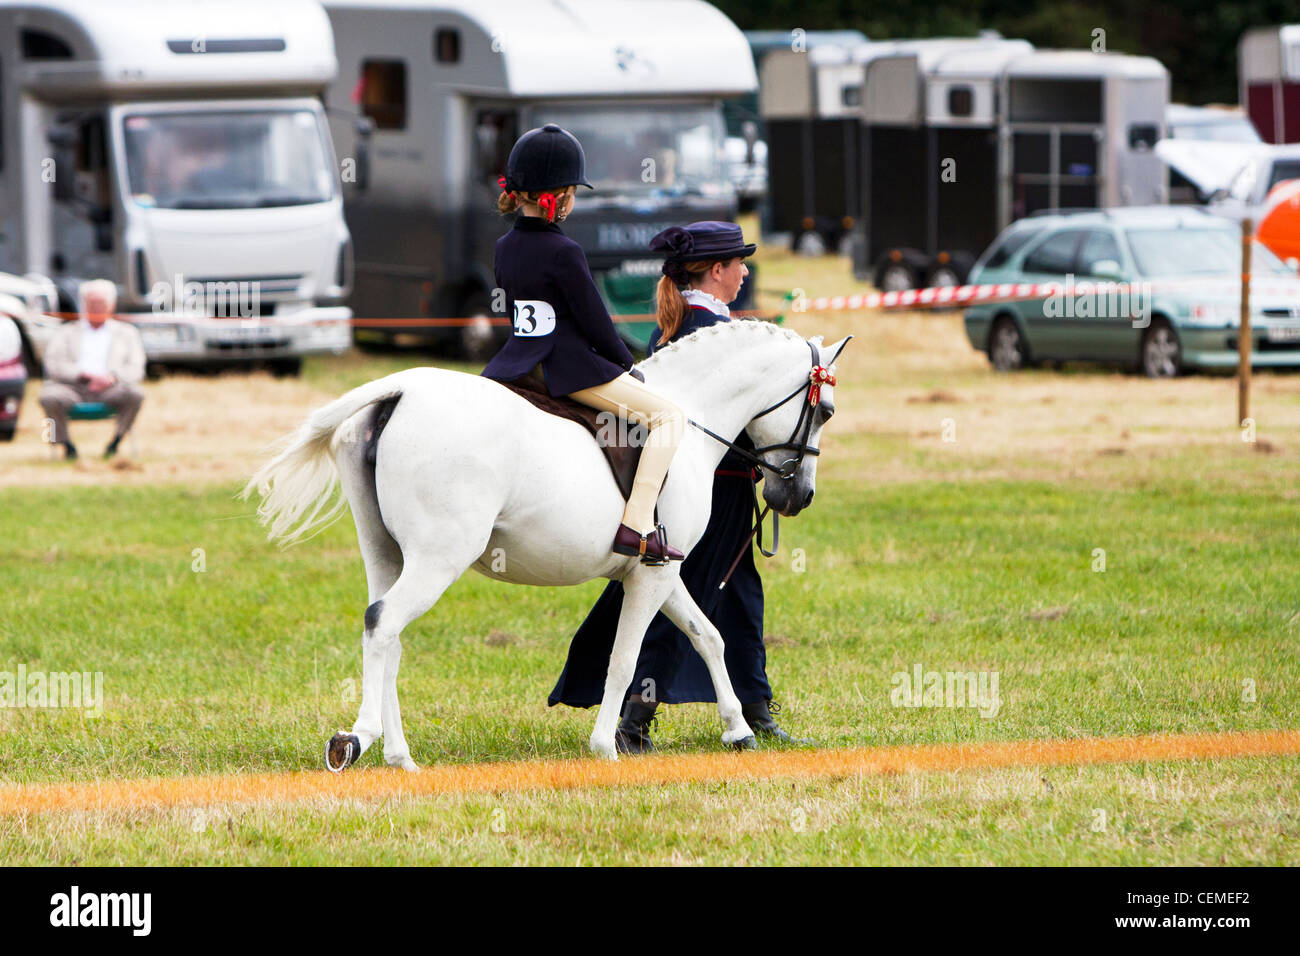 Cossack display horse riding team showing their skills and horsemanship - Stock Image